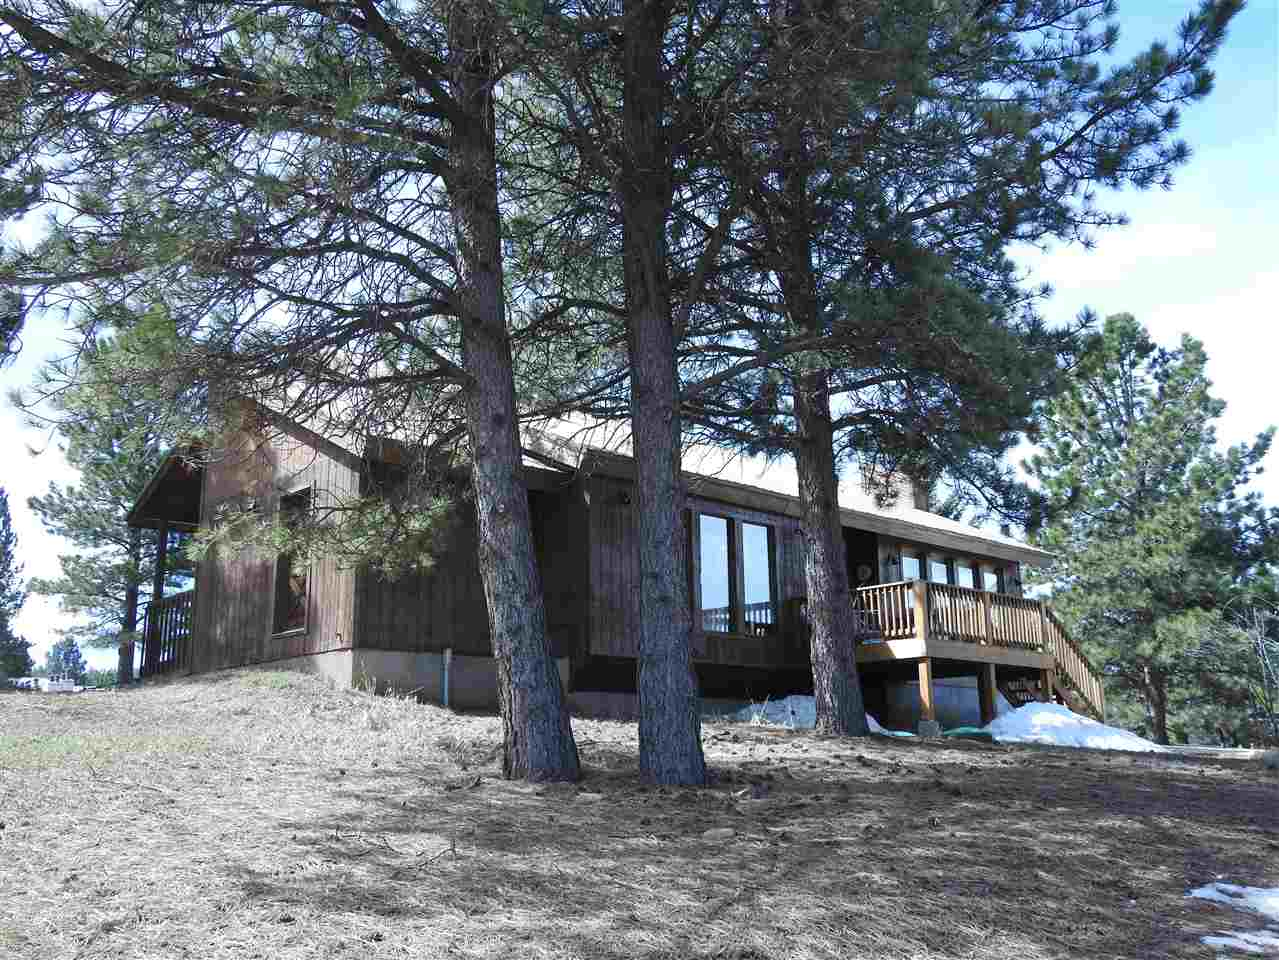 Located just a couple blocks from Angel Fire Ski Resort this house sits perched up on a hill with a mountain view.  Flat and newly graveled road makes for easy access year round.  Access is from both sides of the house.  4 bedrooms, 4 bath and a generous living room with rock fireplace. Large kitchen and dining area to seat the whole family.    Large enough to have multiple families or multi generational families.  Would make a great rental because of location to ski area.